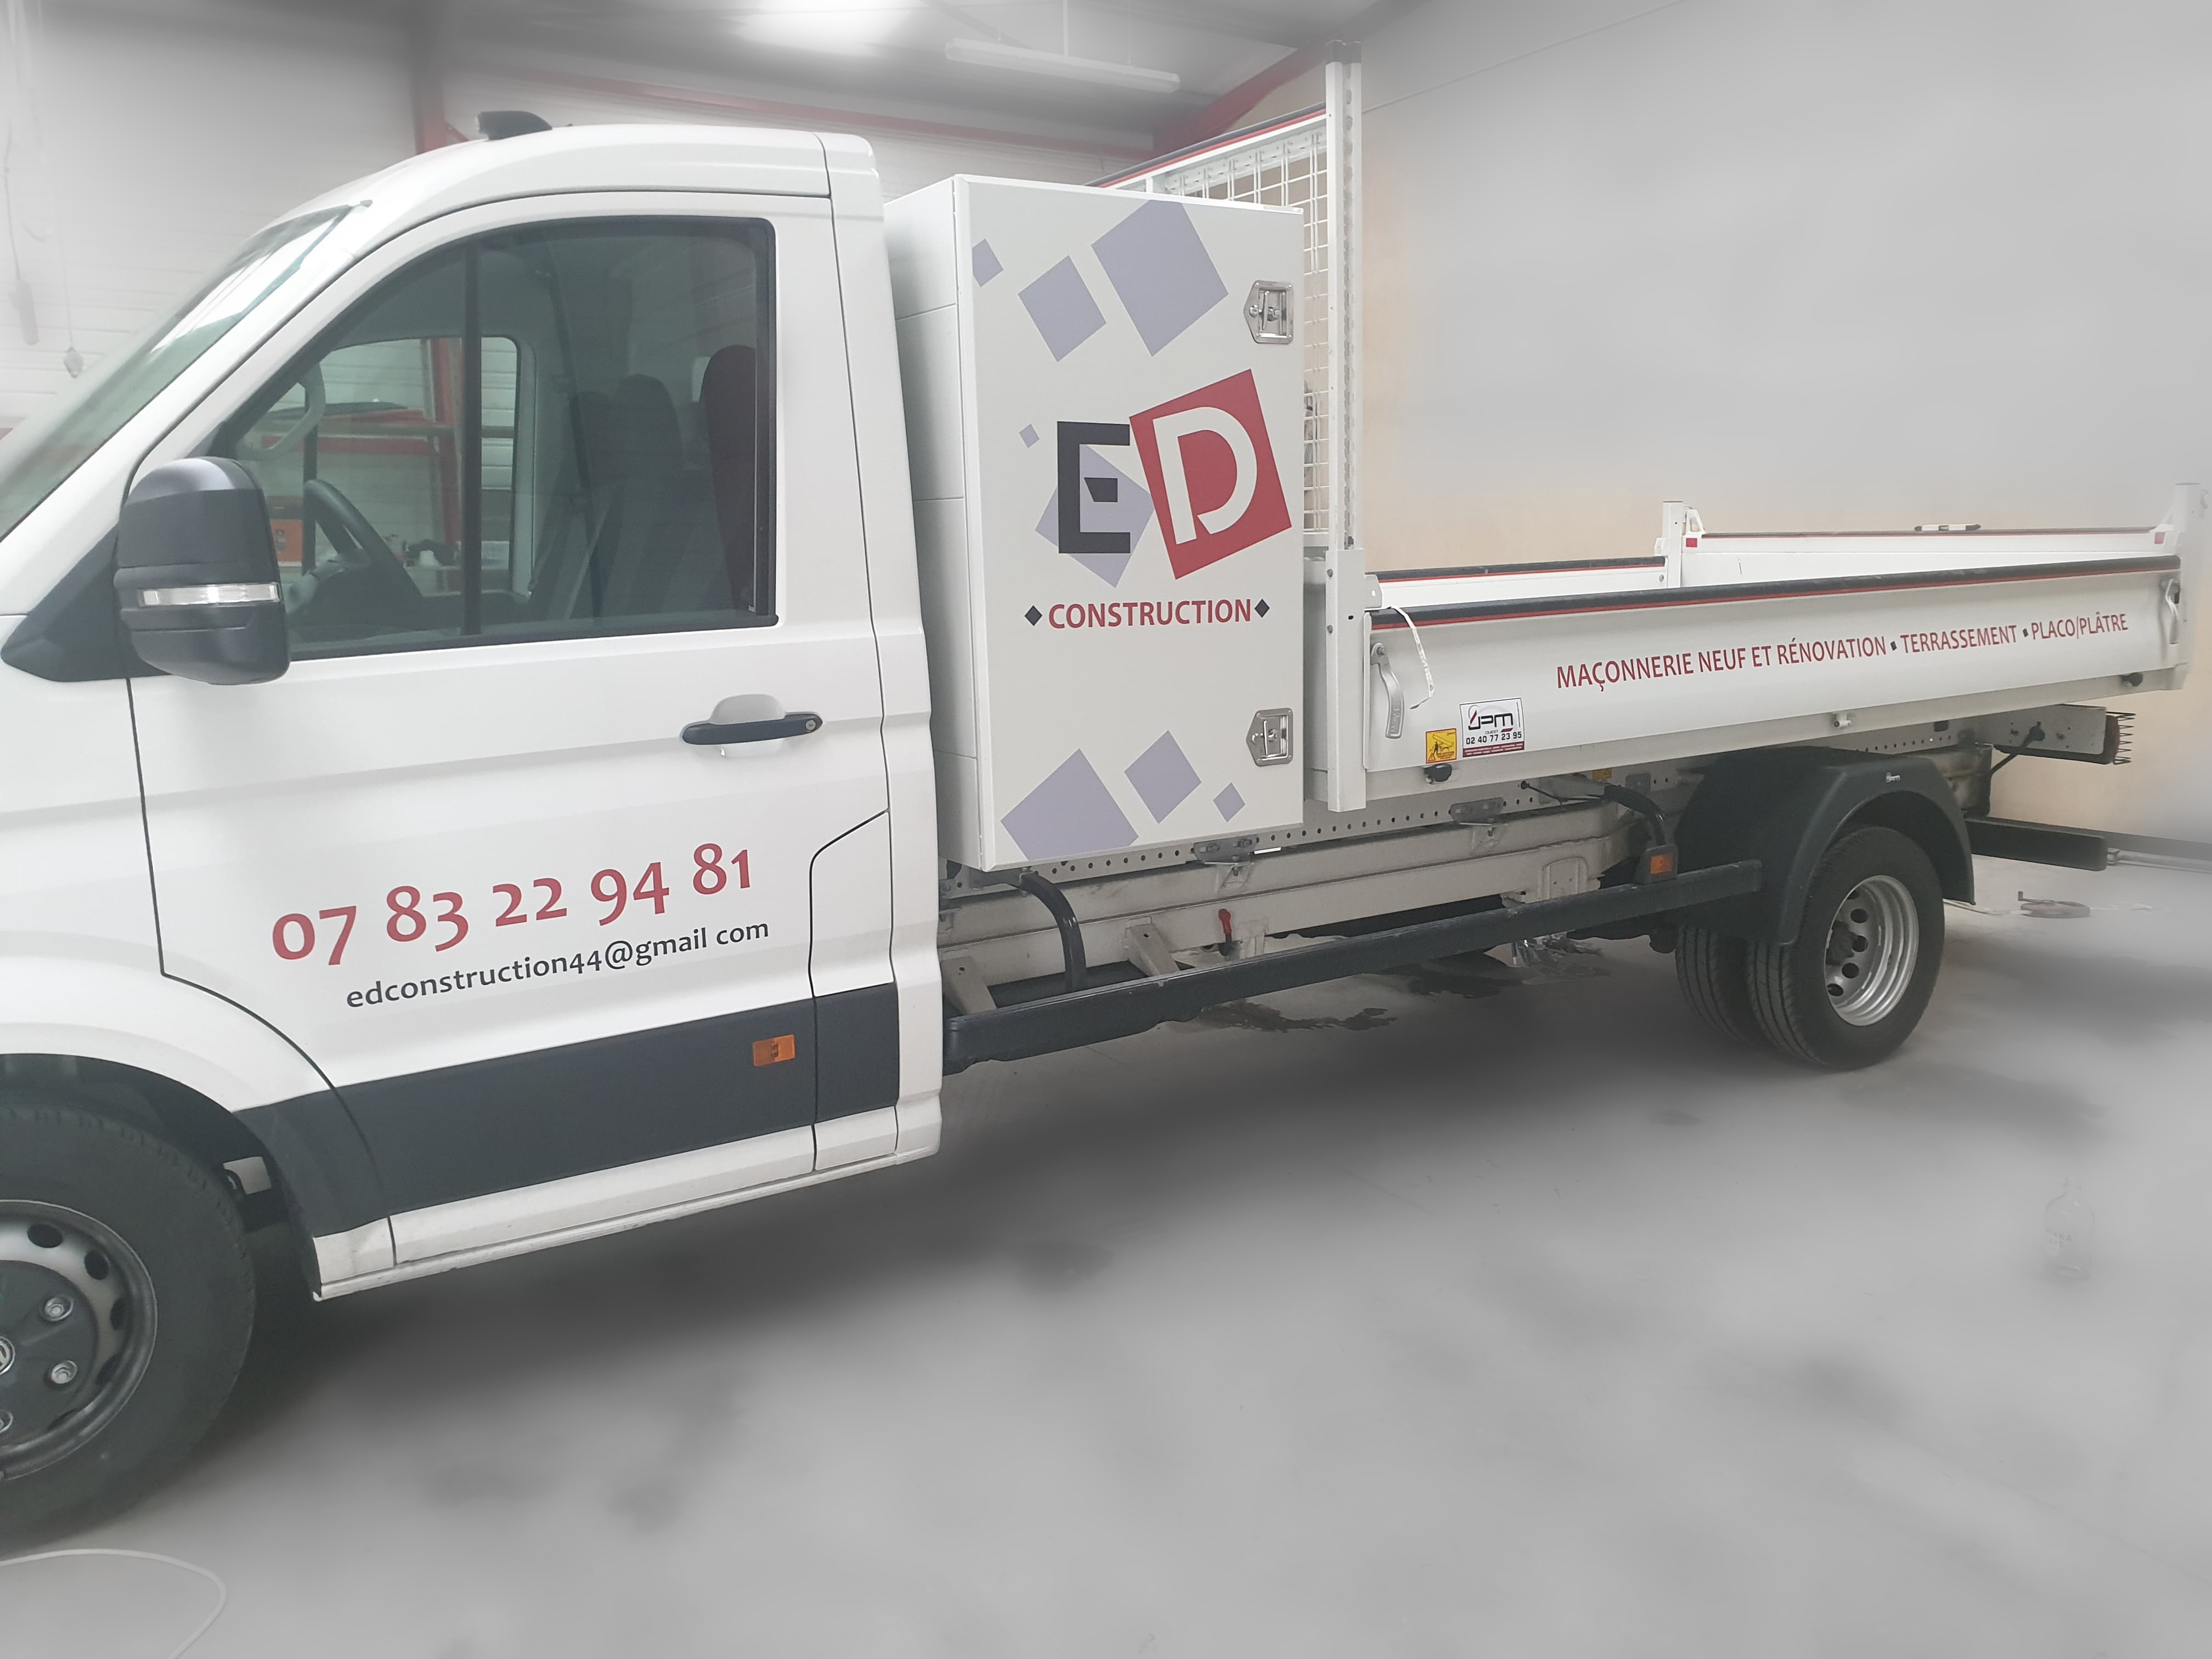 Camion ED Construction